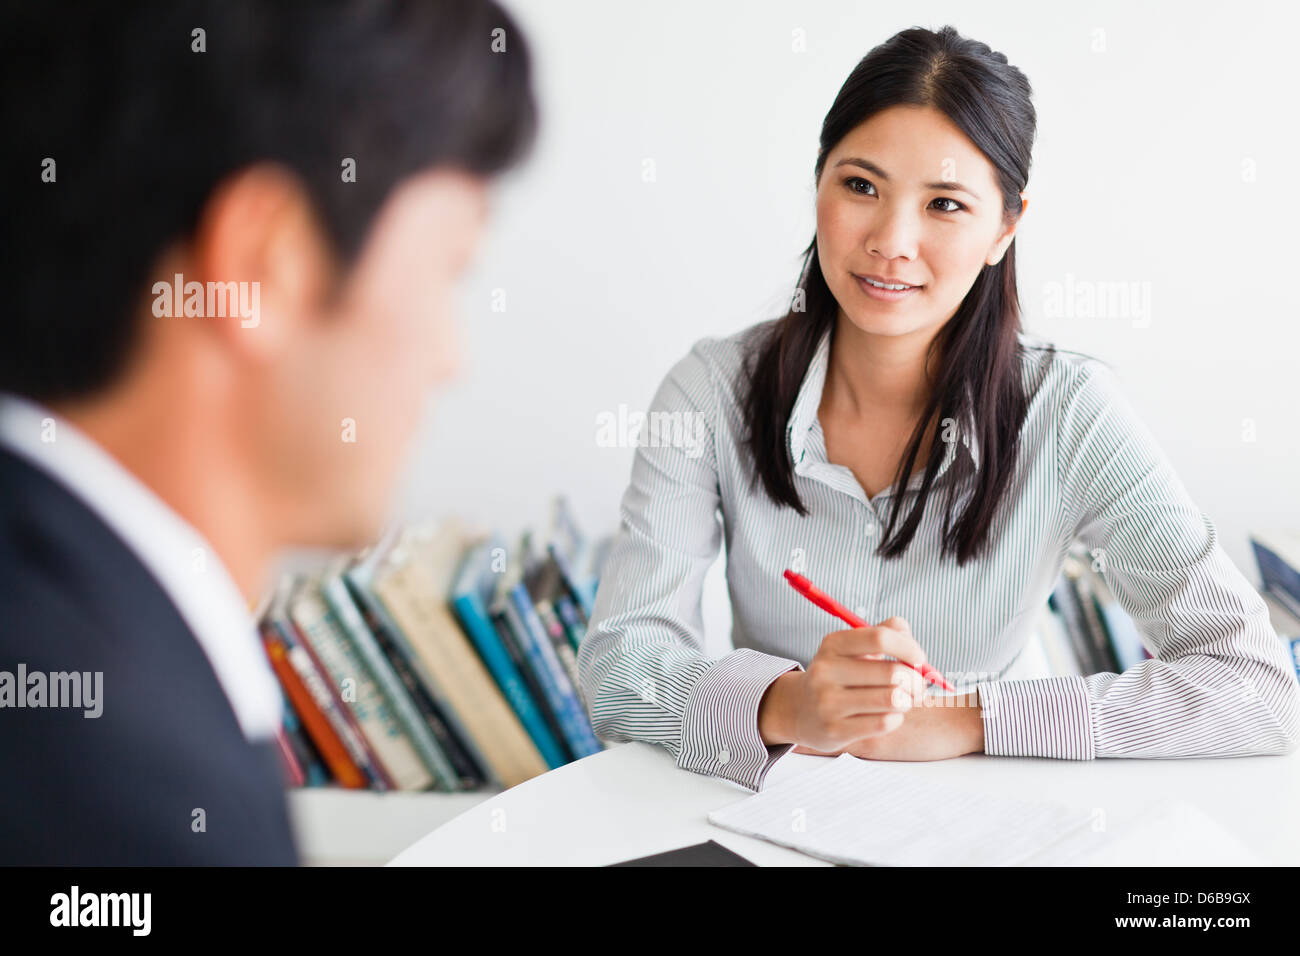 Business people talking at desk - Stock Image